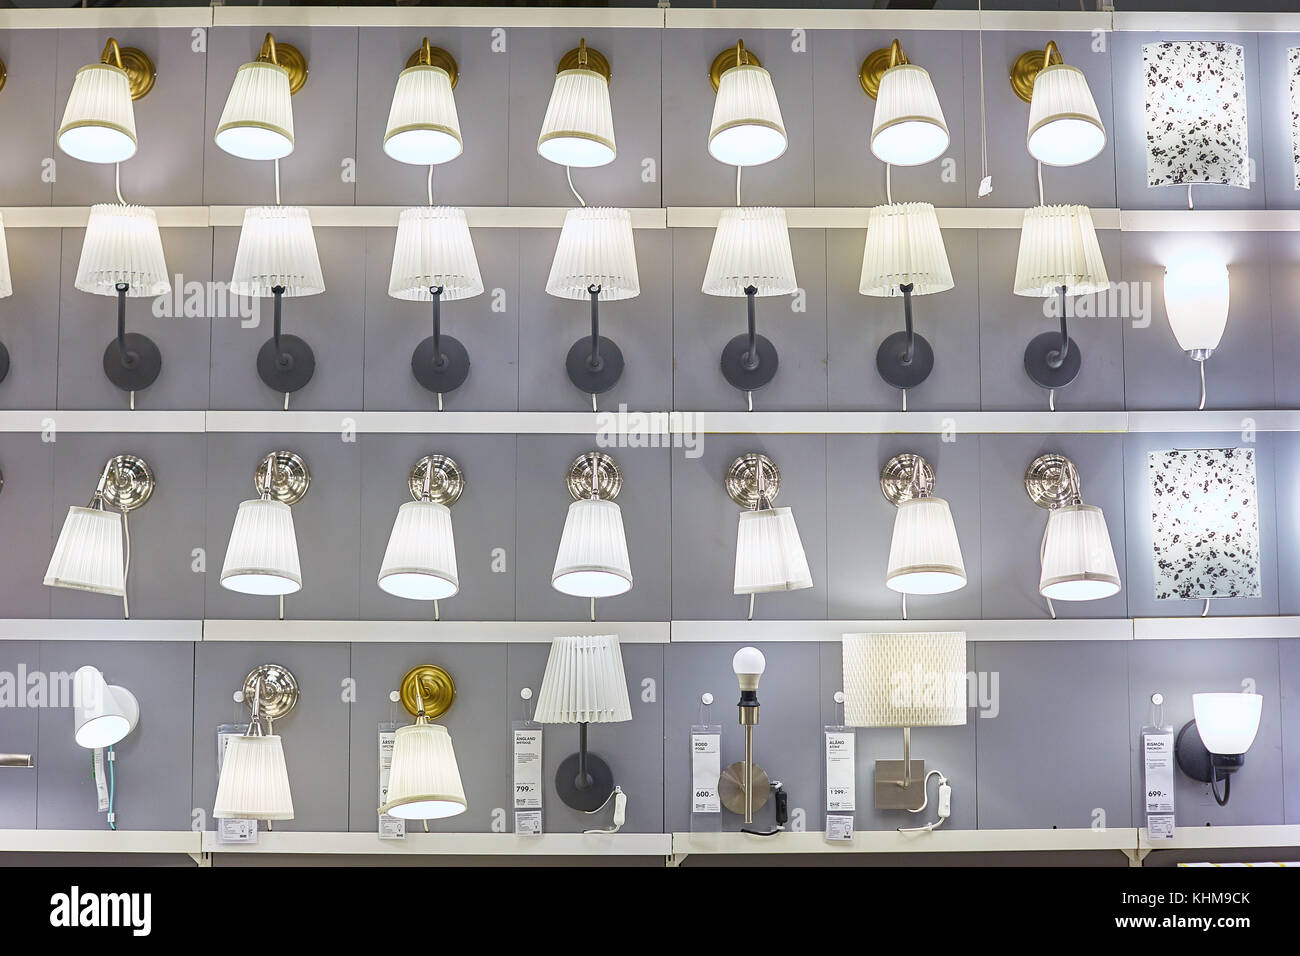 Samara russia november 15 2017 various lighting fixtures lamps and nightlights in the ikea store ikea is the worlds largest furniture retailer